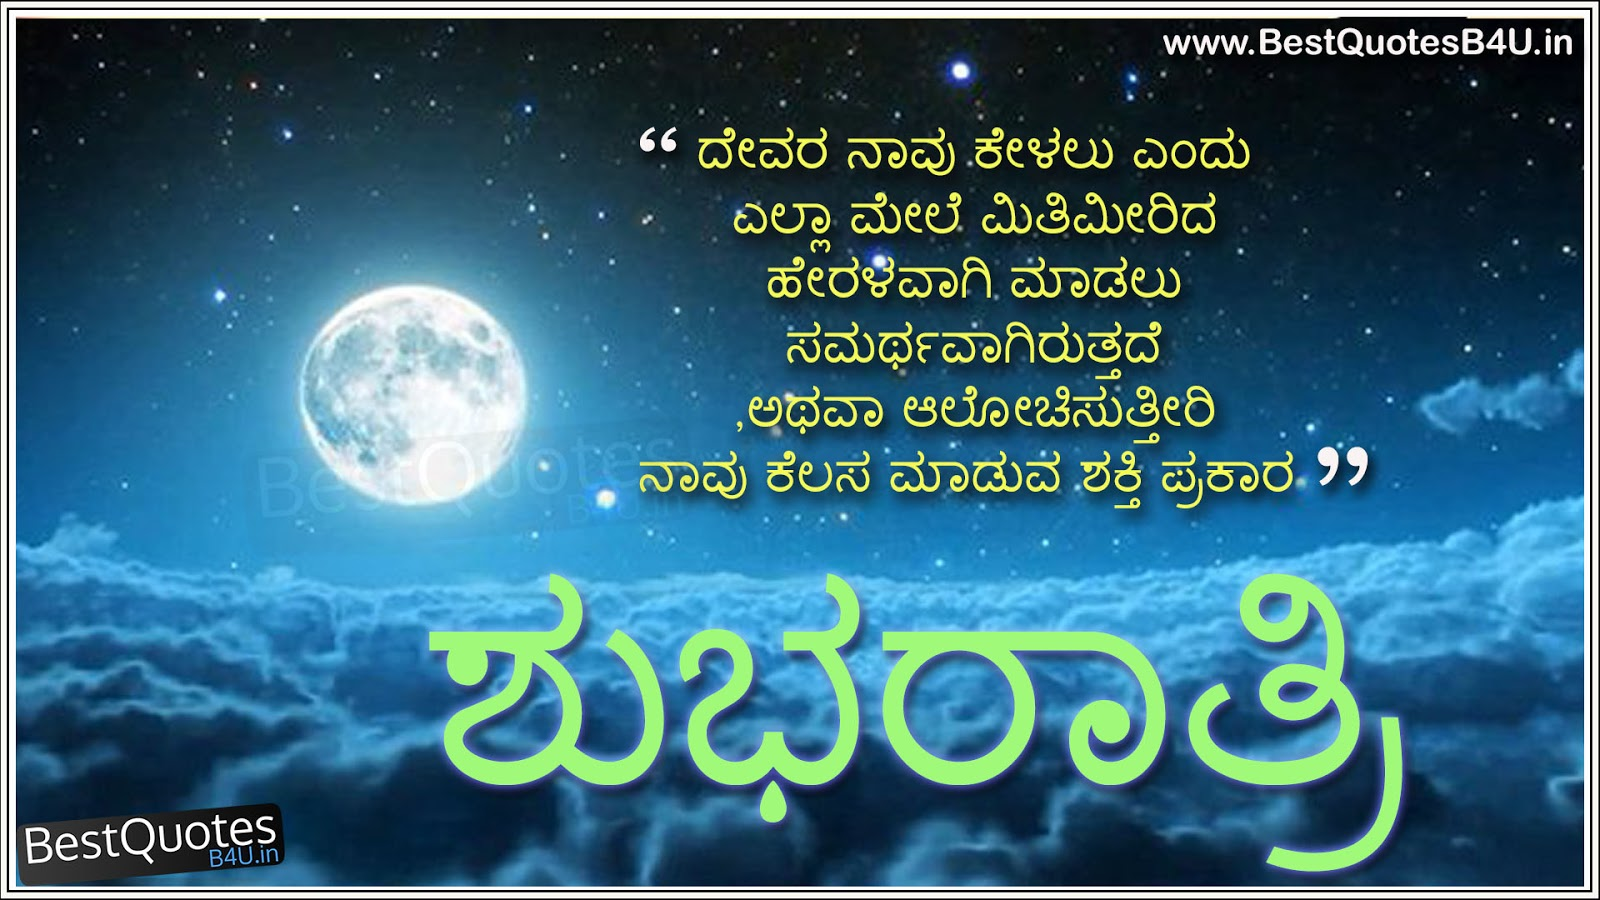 Kannada Love Quotes Wallpapers Good Night Sms In Kannada 1887936 Hd Wallpaper Backgrounds Download